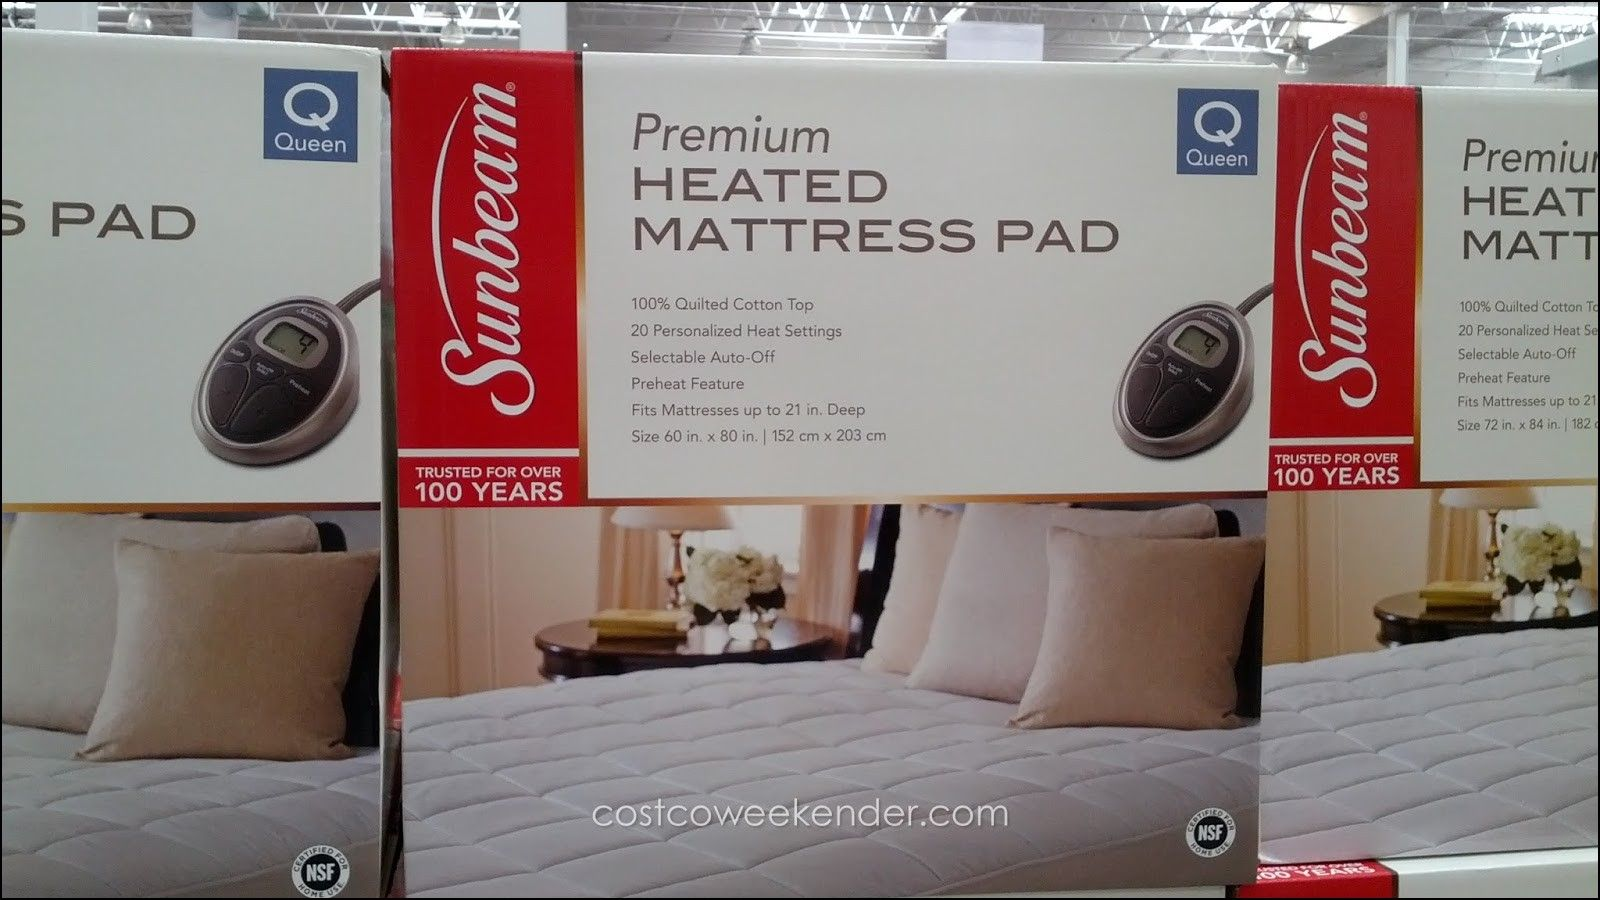 co bed rapidlaunch sheets i november t costco stuff to went hizli until didn edition needed bedding know